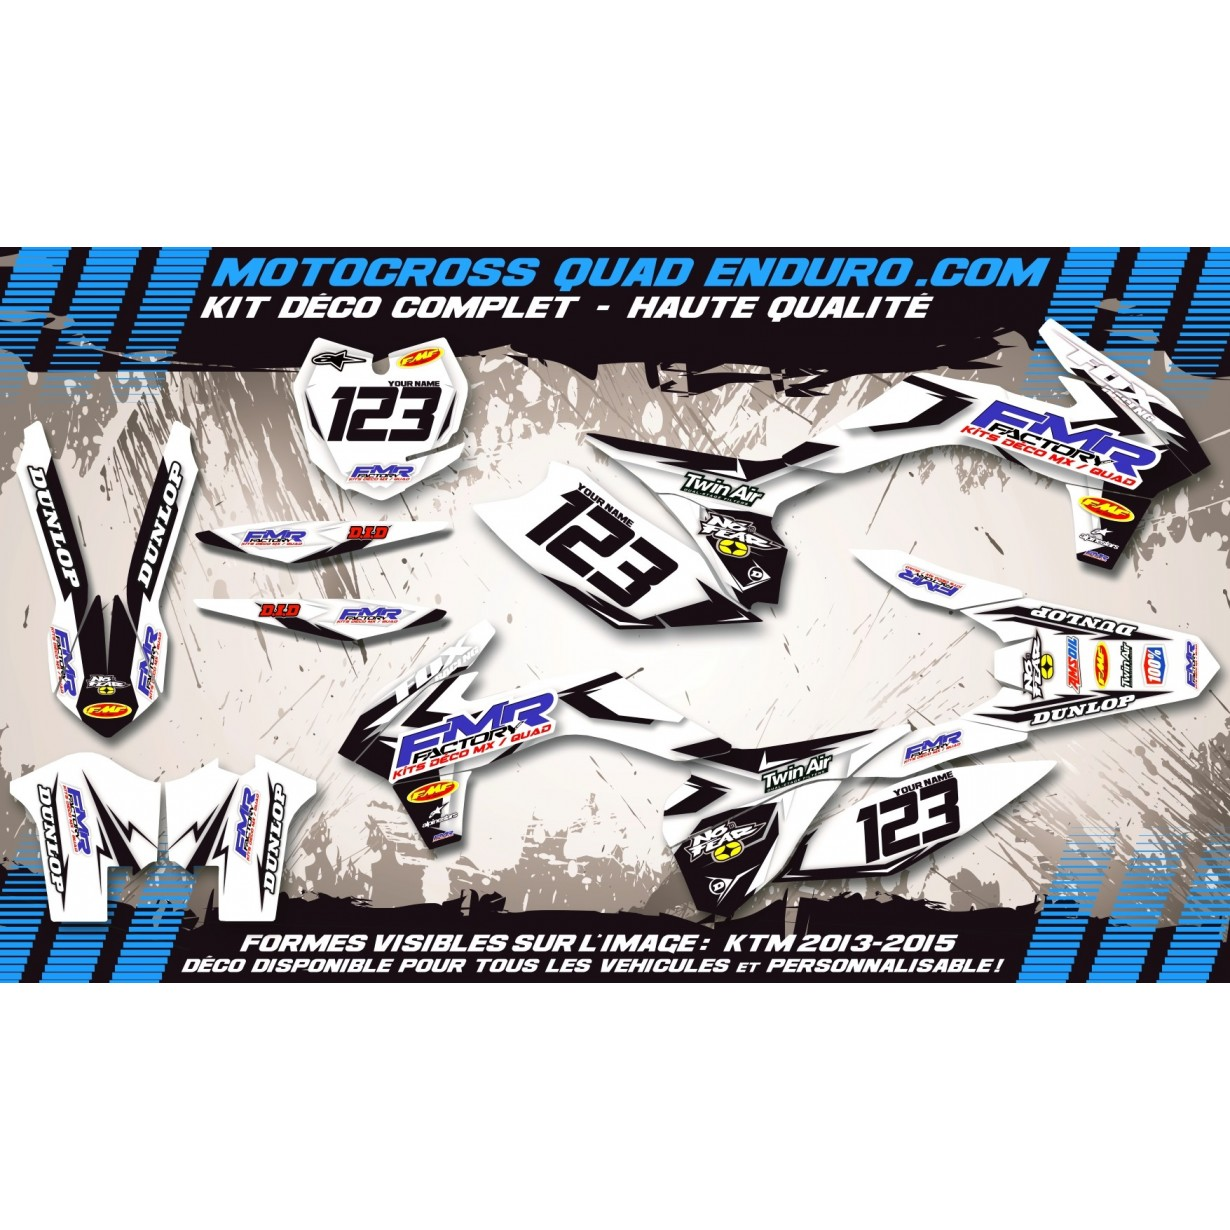 KIT DÉCO Perso 450 YFZ 04-08 QUAD Fmr factory WT Edition MA13WT